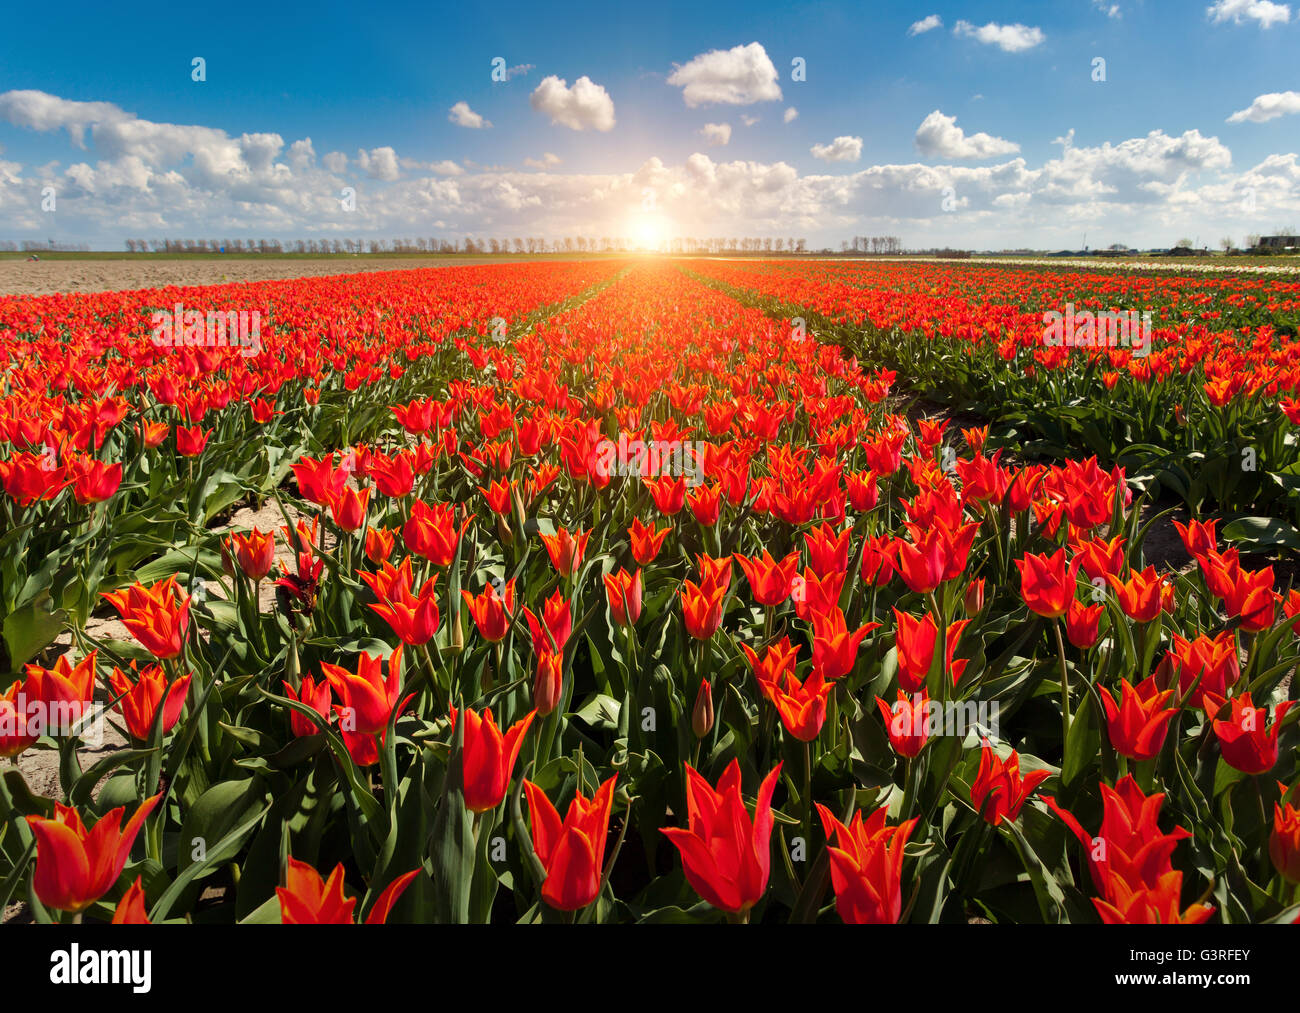 Tulips Beautiful Colorful Red Flowers In The Morning In Spring